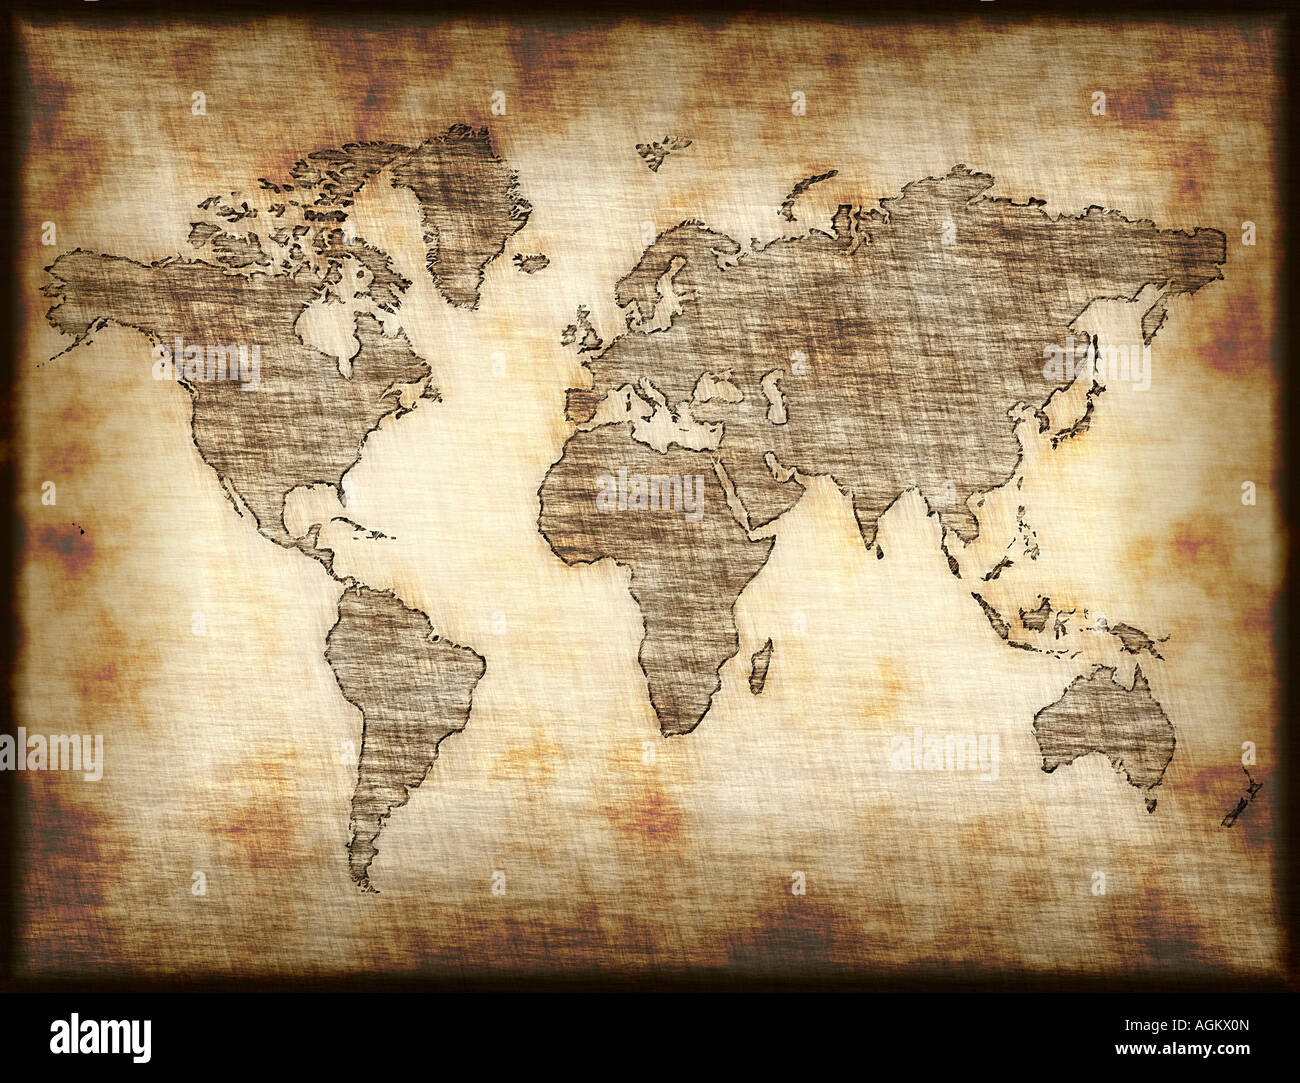 World map drawing stock photos world map drawing stock images alamy map of world drawn onto old mottled paper or cloth stock image gumiabroncs Images